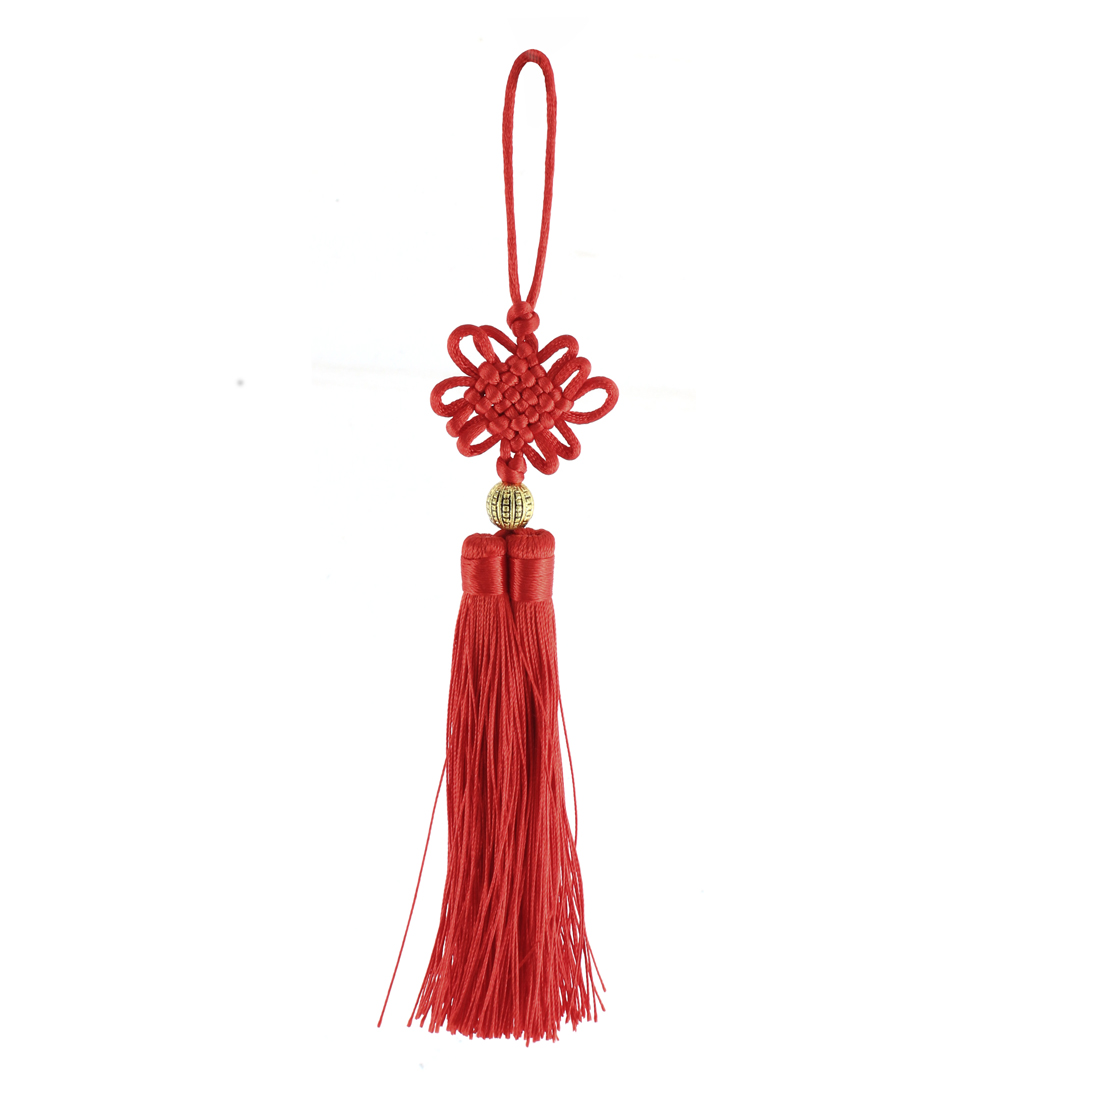 Home Decoration Red Tassels Chinese Luck Knot Hanging Ornament